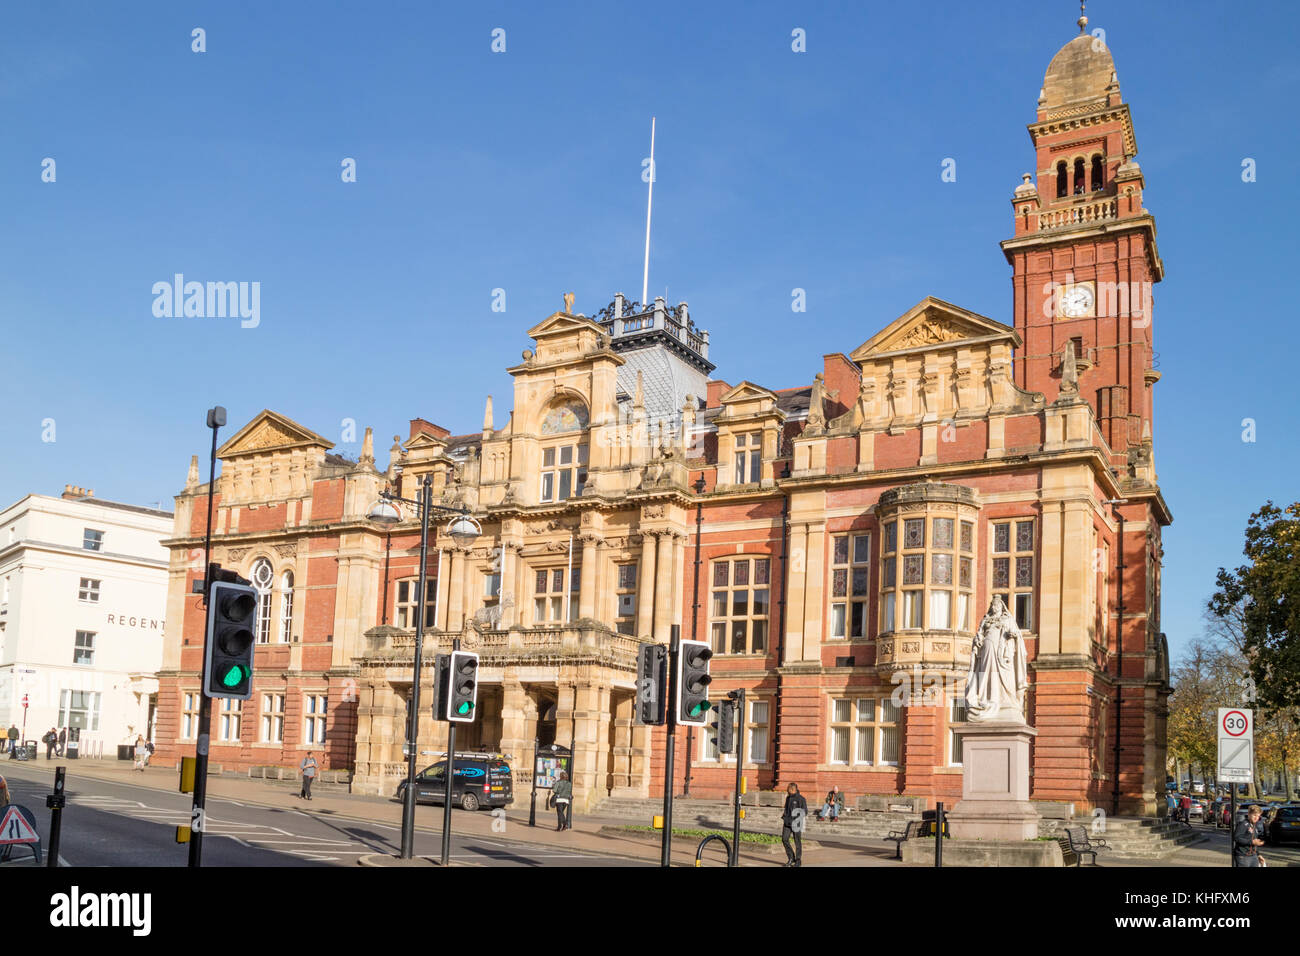 Leamington Spa Town Council building, Leamington Spa, Warwickshire, England, UK - Stock Image